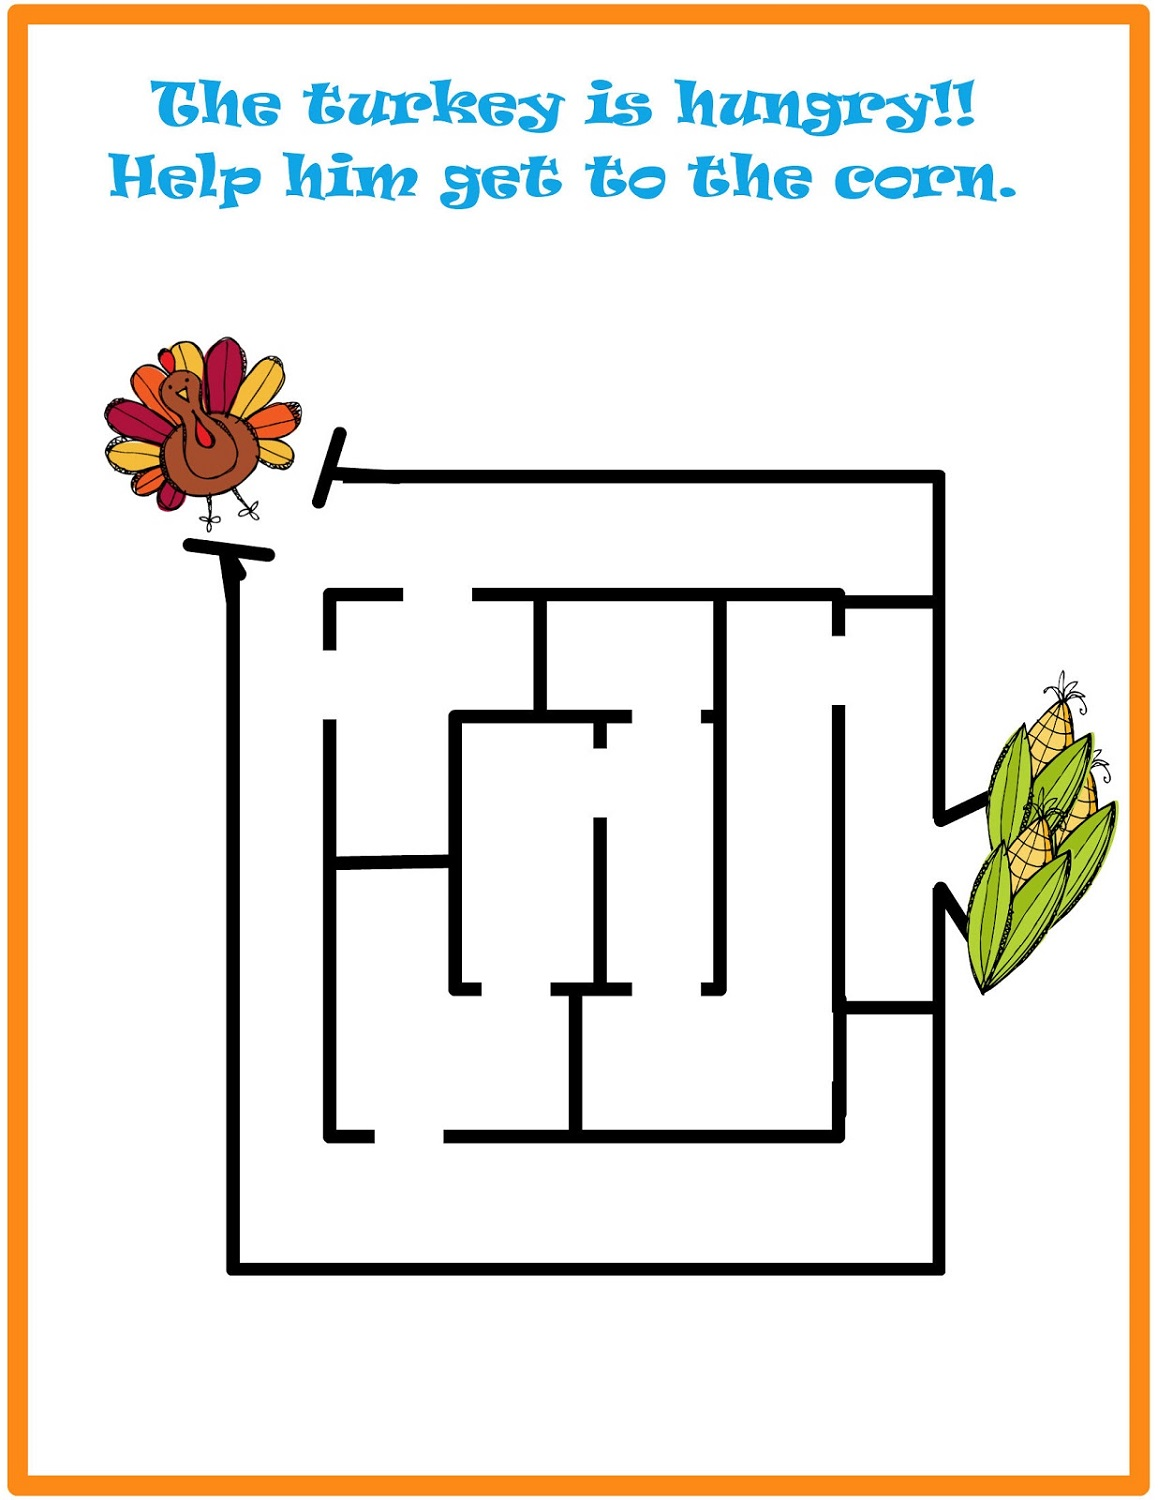 Simple Mazes for Kids | Educative Printable